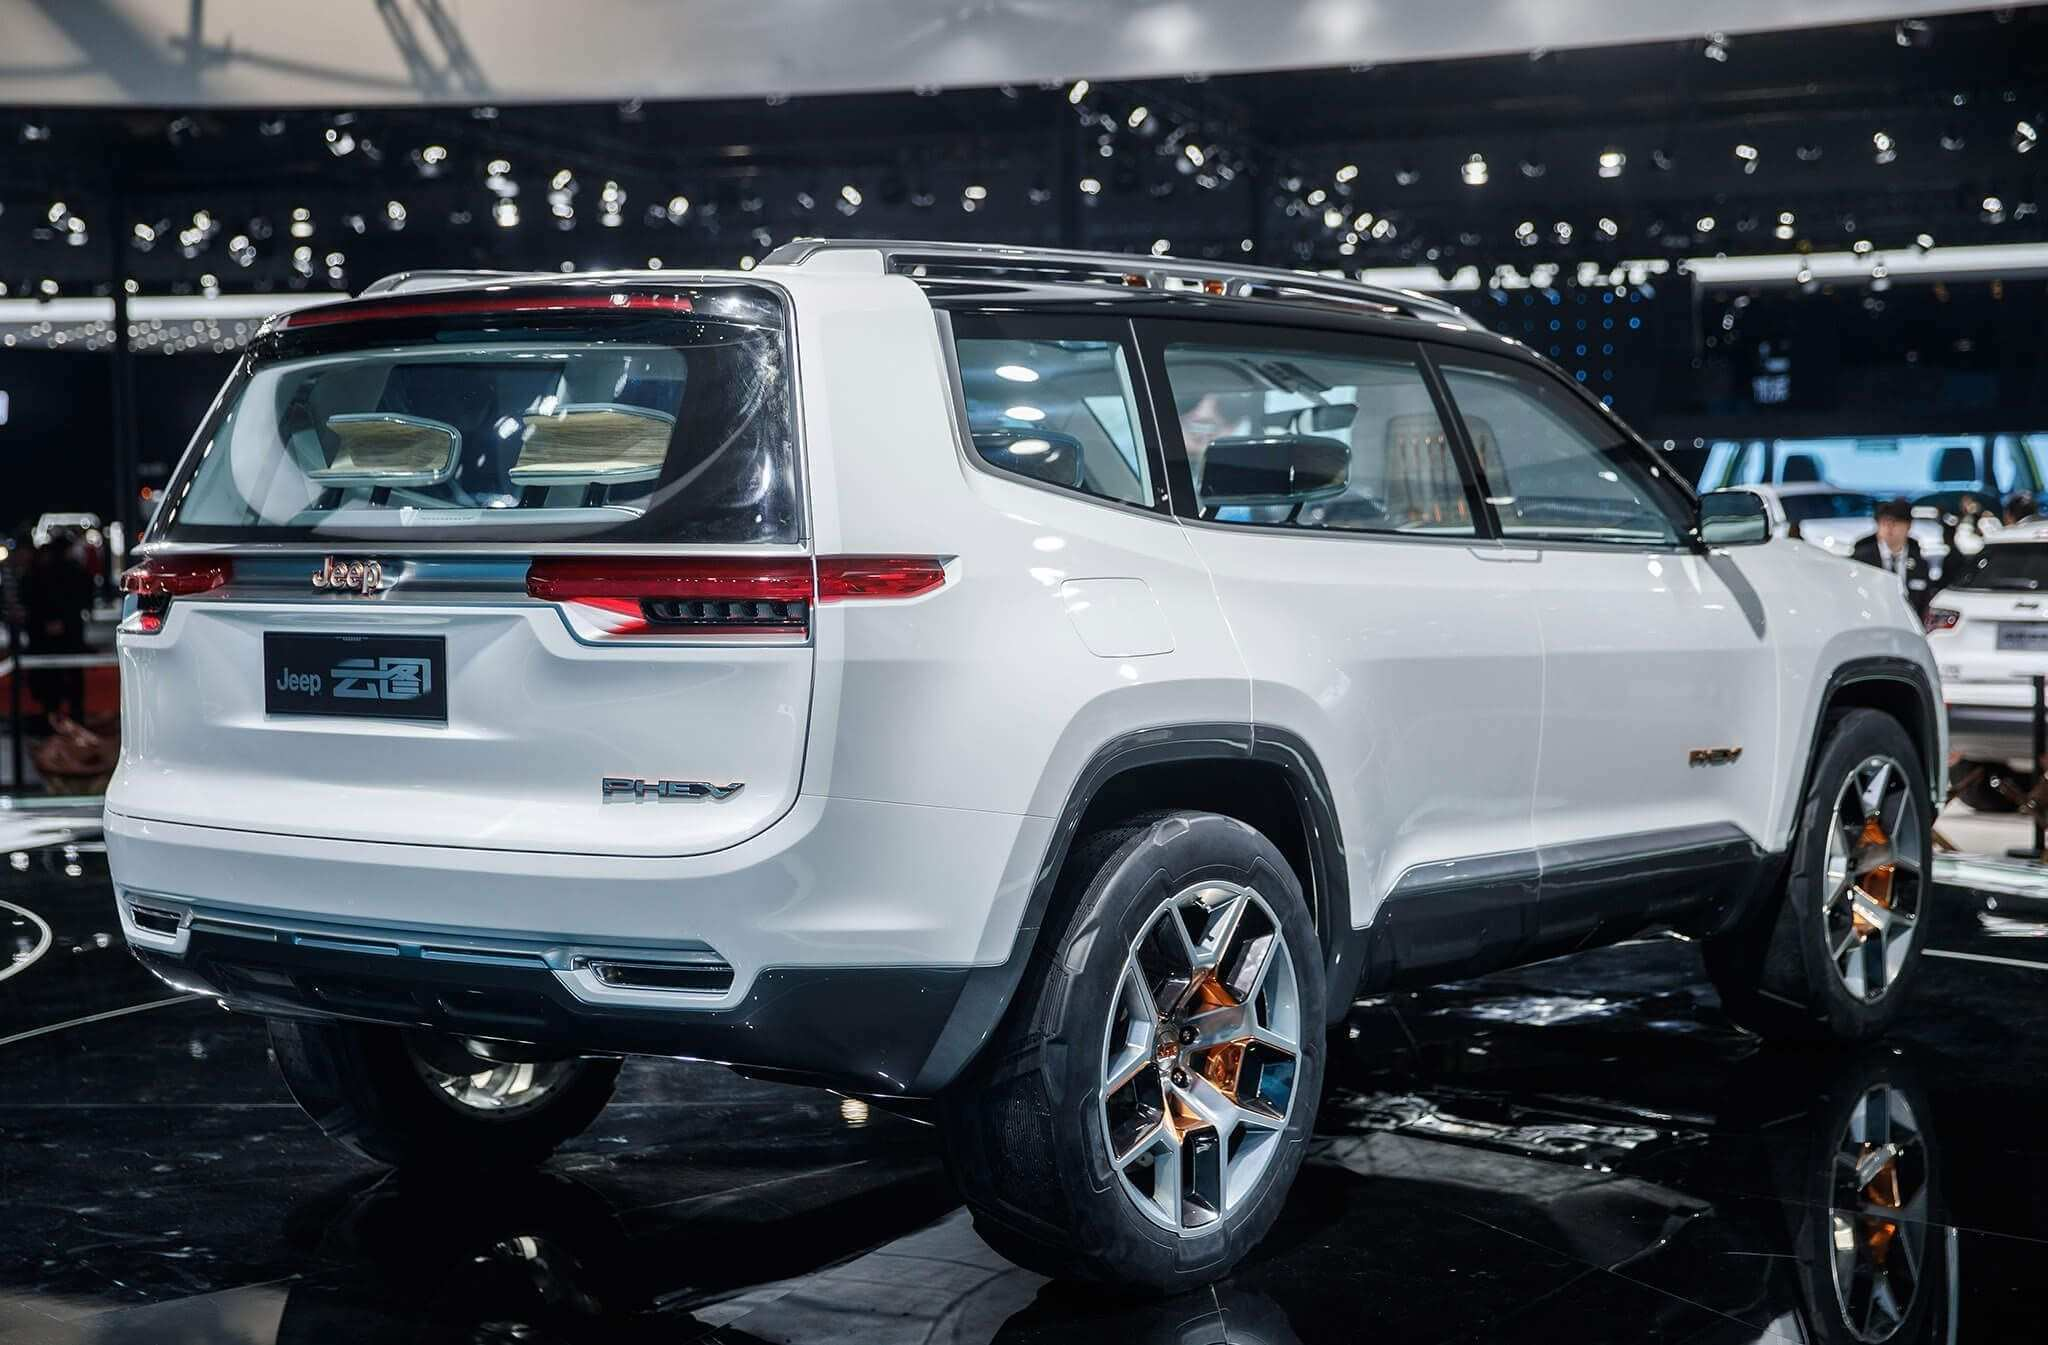 95 New Jeep Cherokee 2020 Release Date with Jeep Cherokee 2020